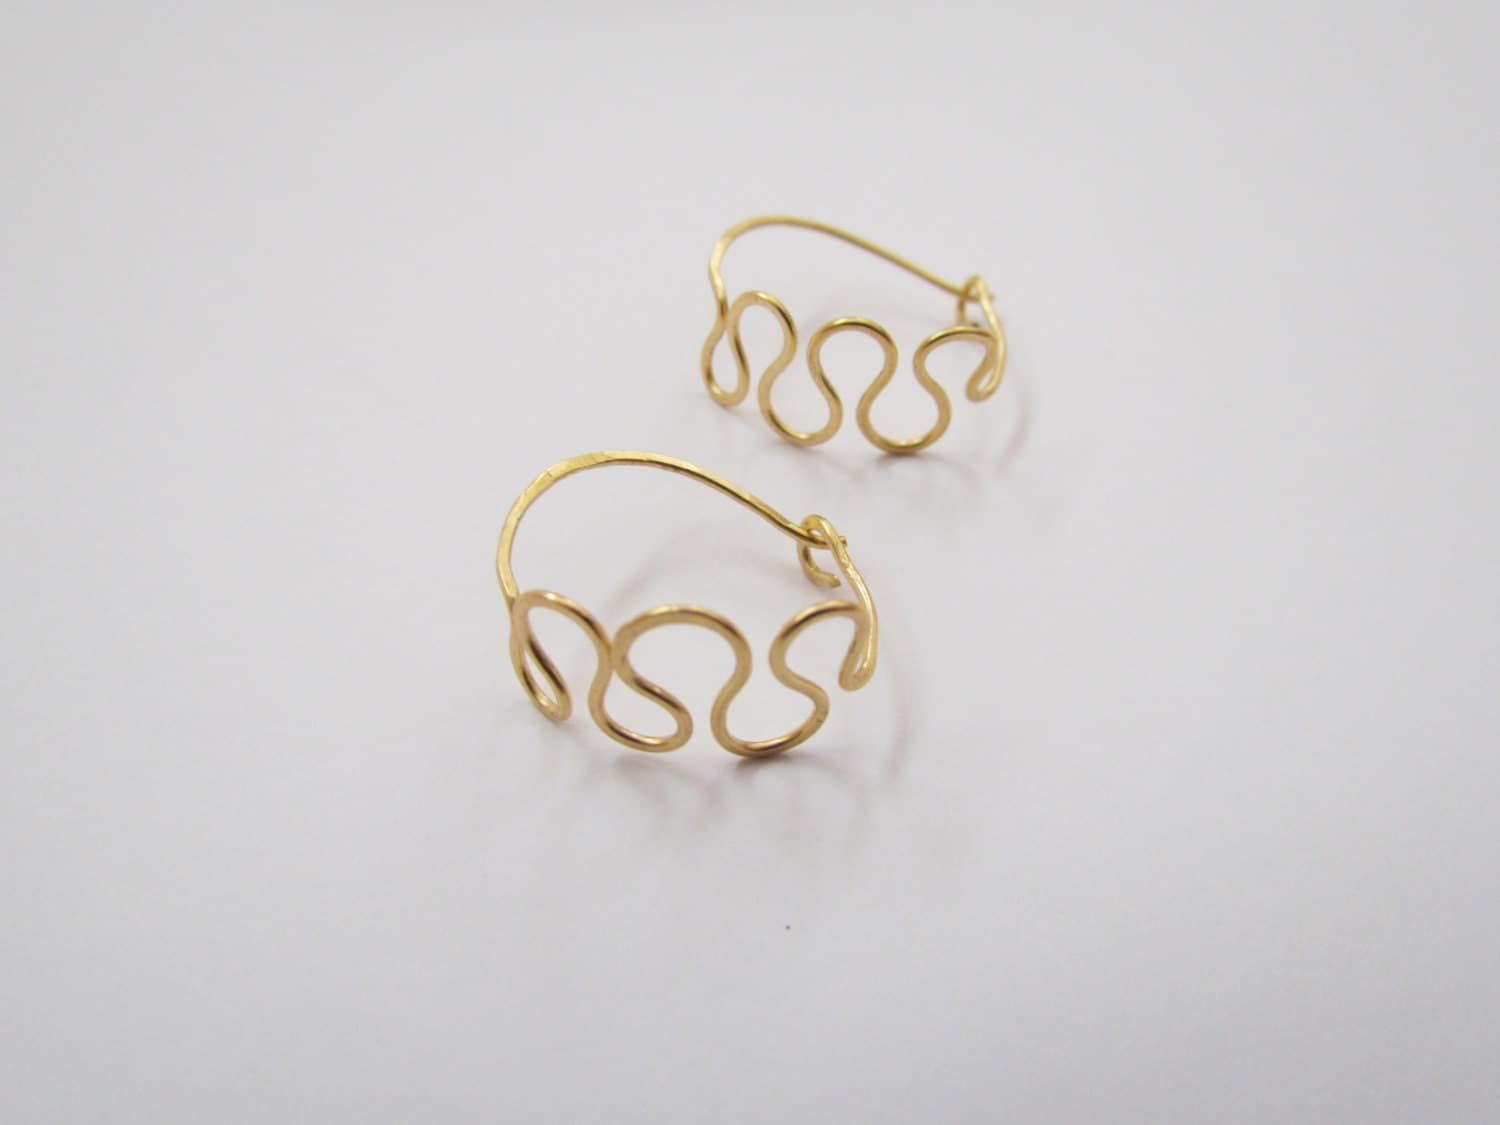 Wiggle Hoop Earrings. Artisan Small Hoops. Dainty Elegant Wavy Hoop. Custom Finish Israel Minimalist Jewelry